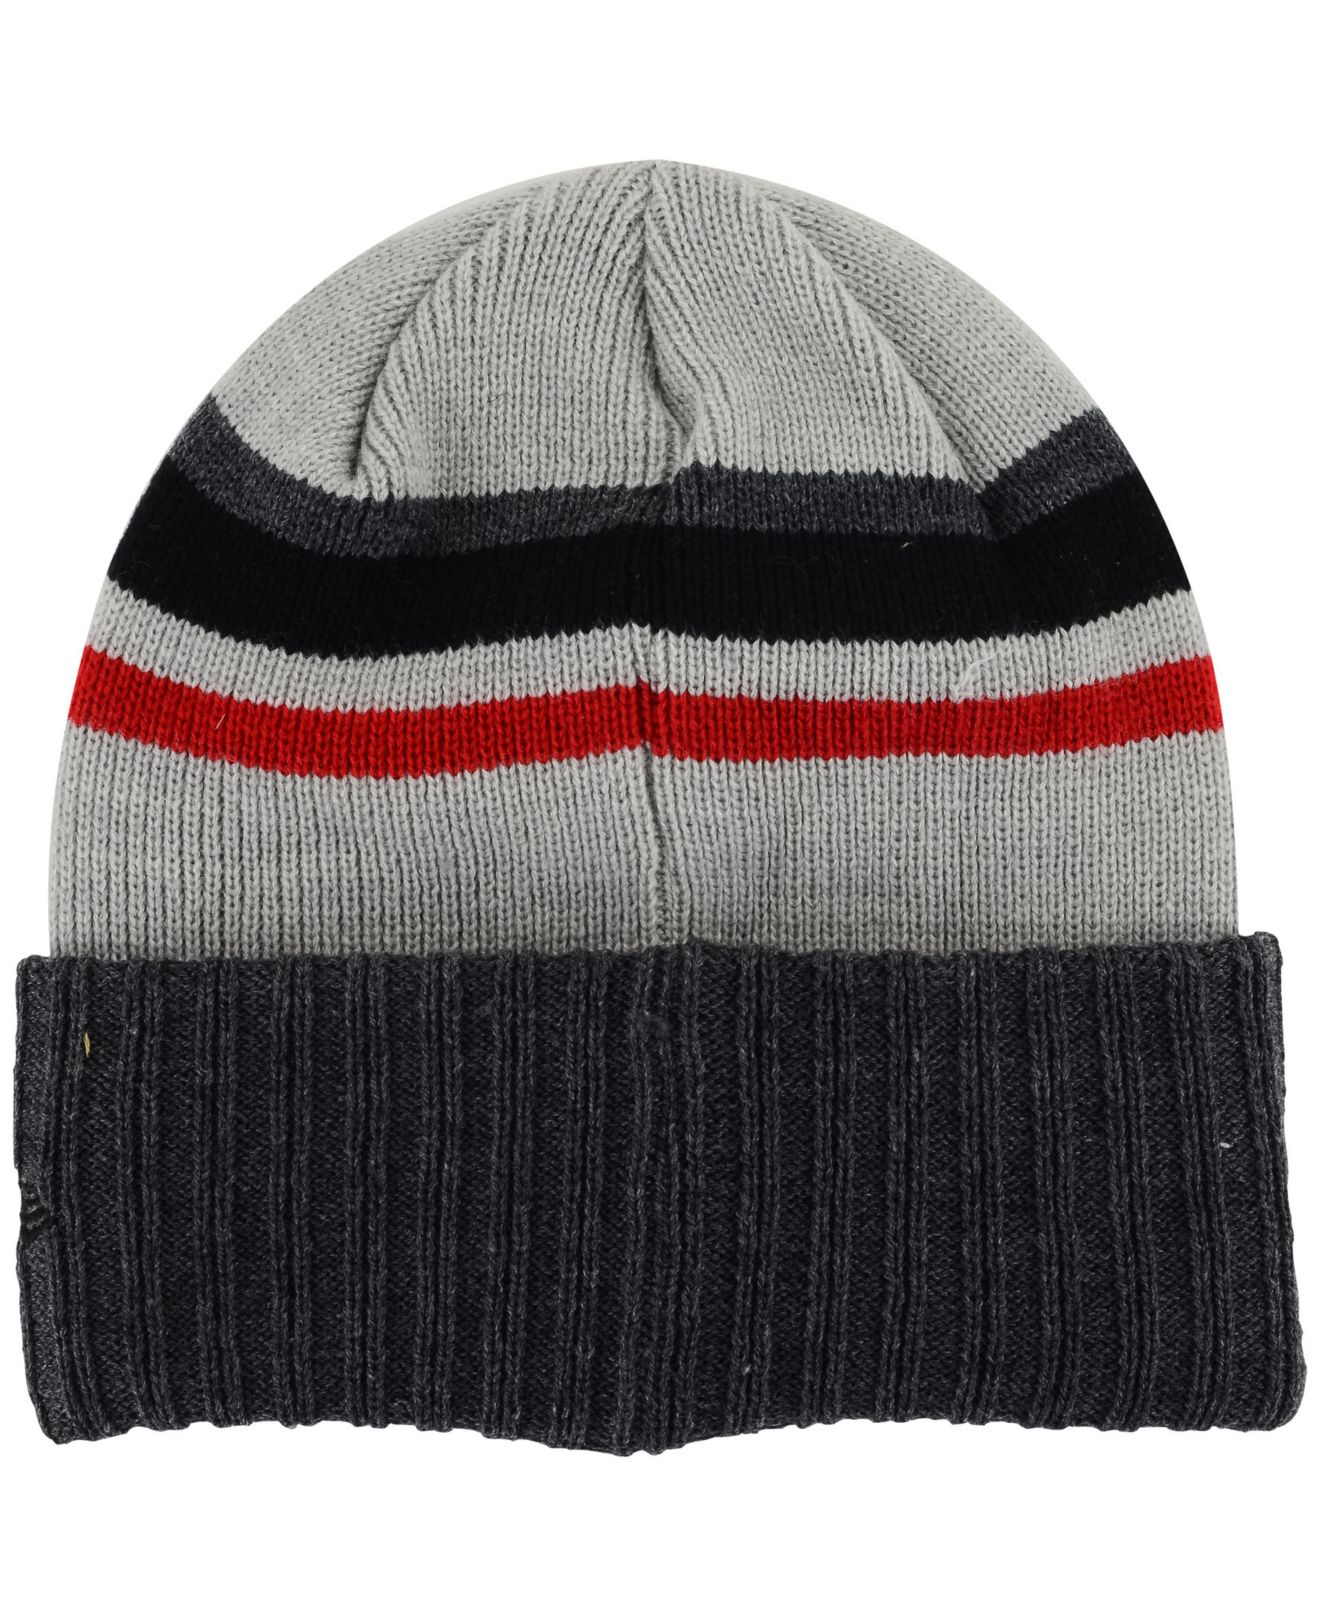 eb22275ef53 Lyst - Ktz Houston Rockets Prep Class Knit Hat in Red for Men